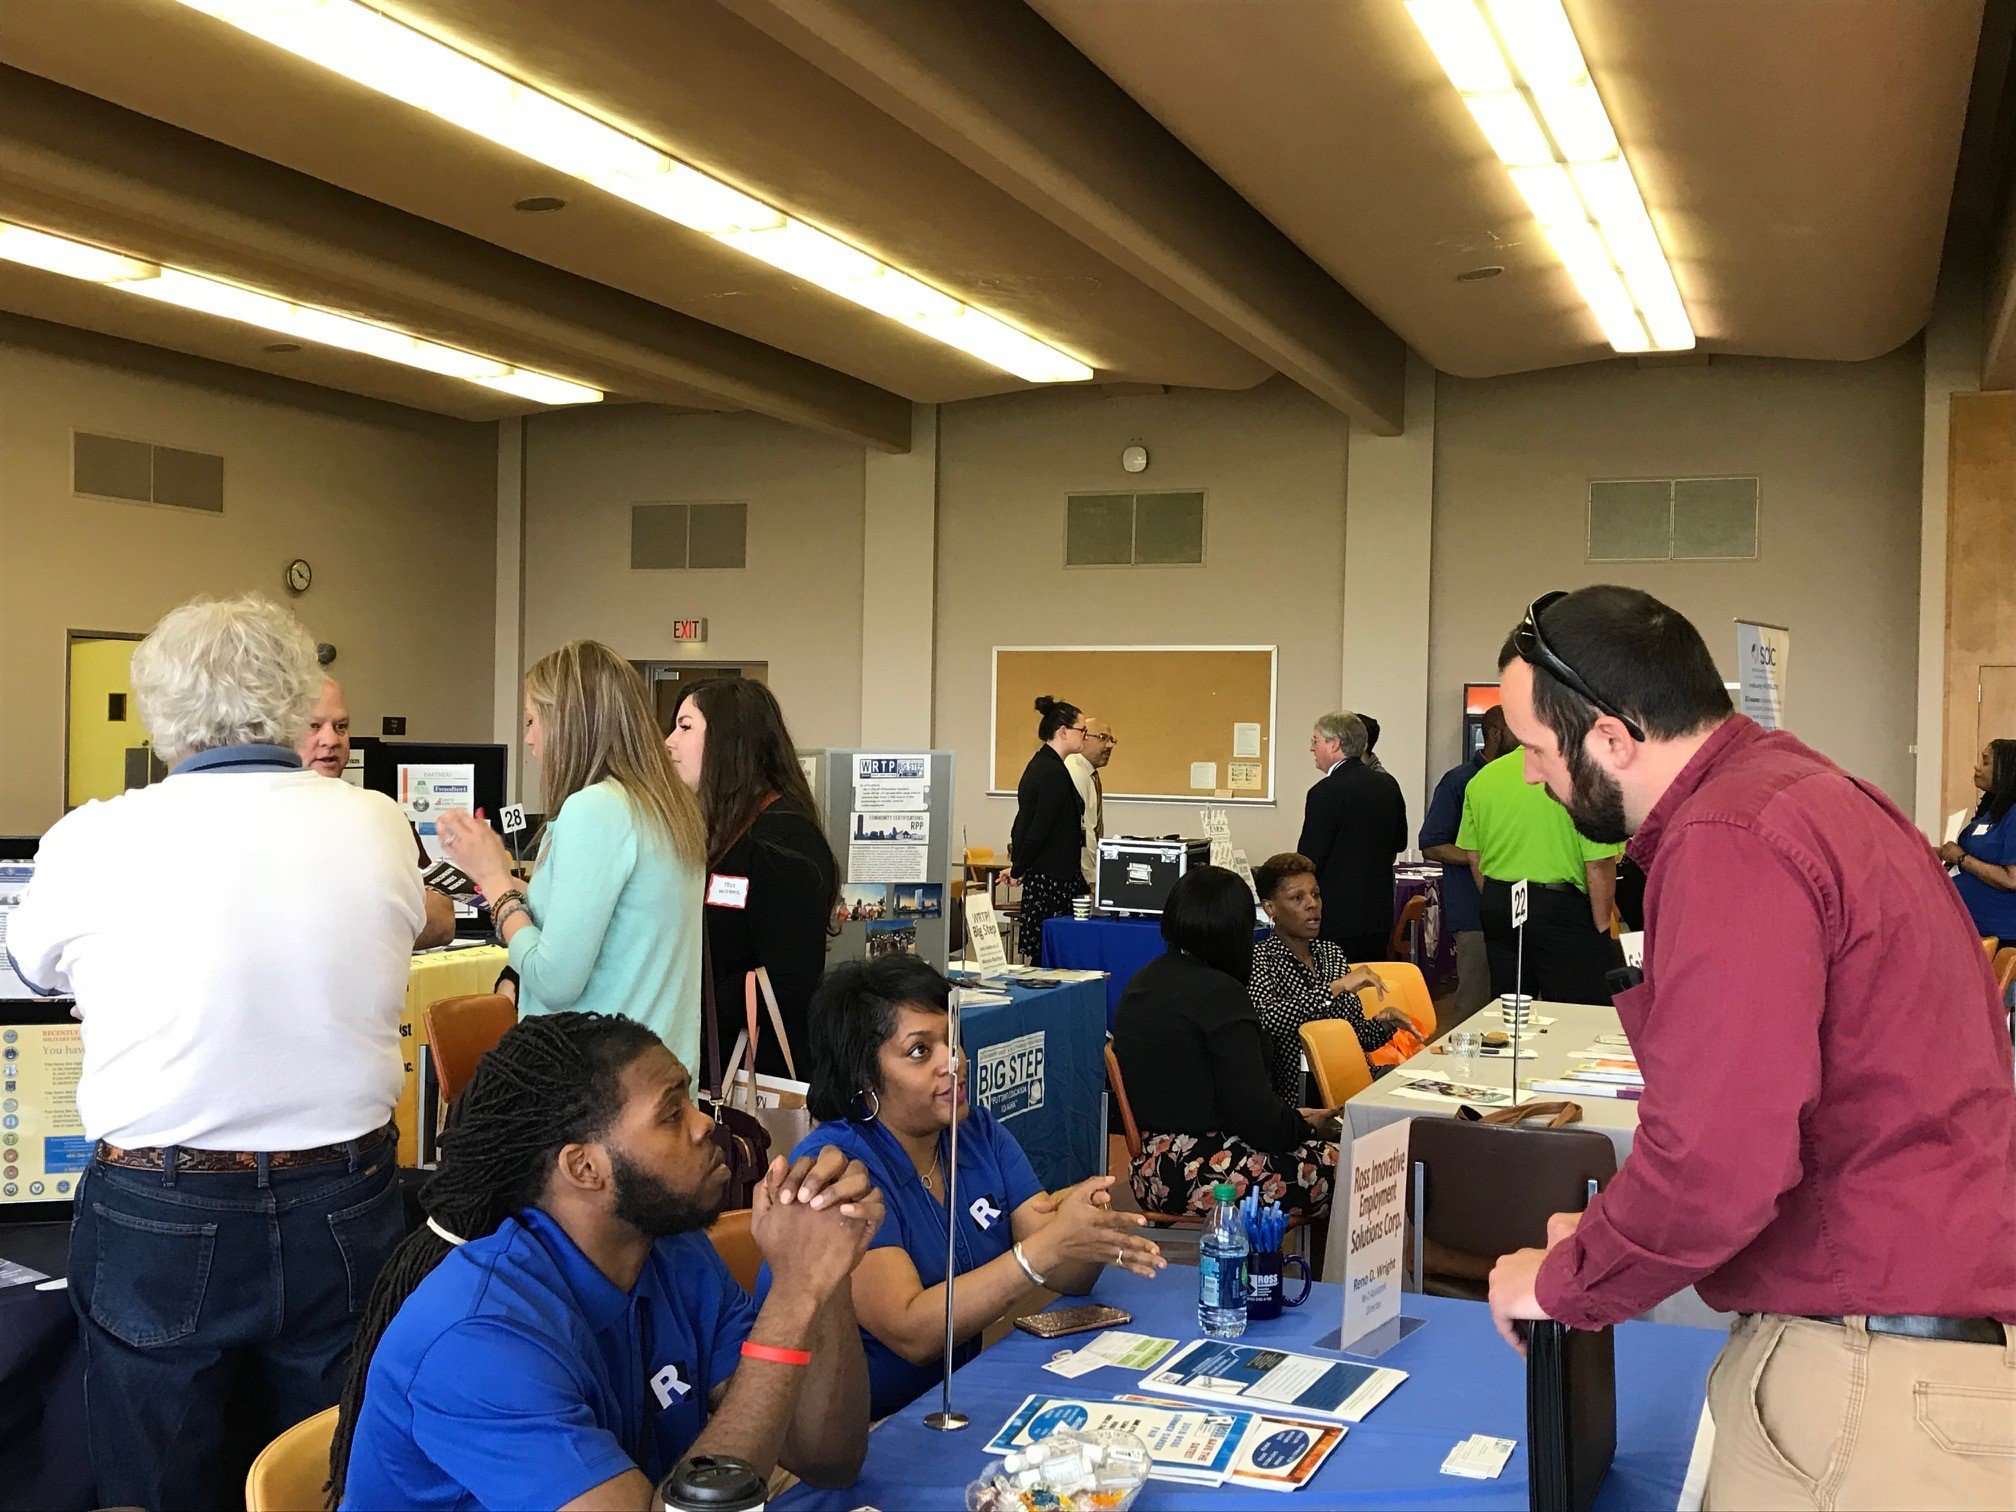 Southeast Wisconsin Reentry Employment Expo Builds Connections